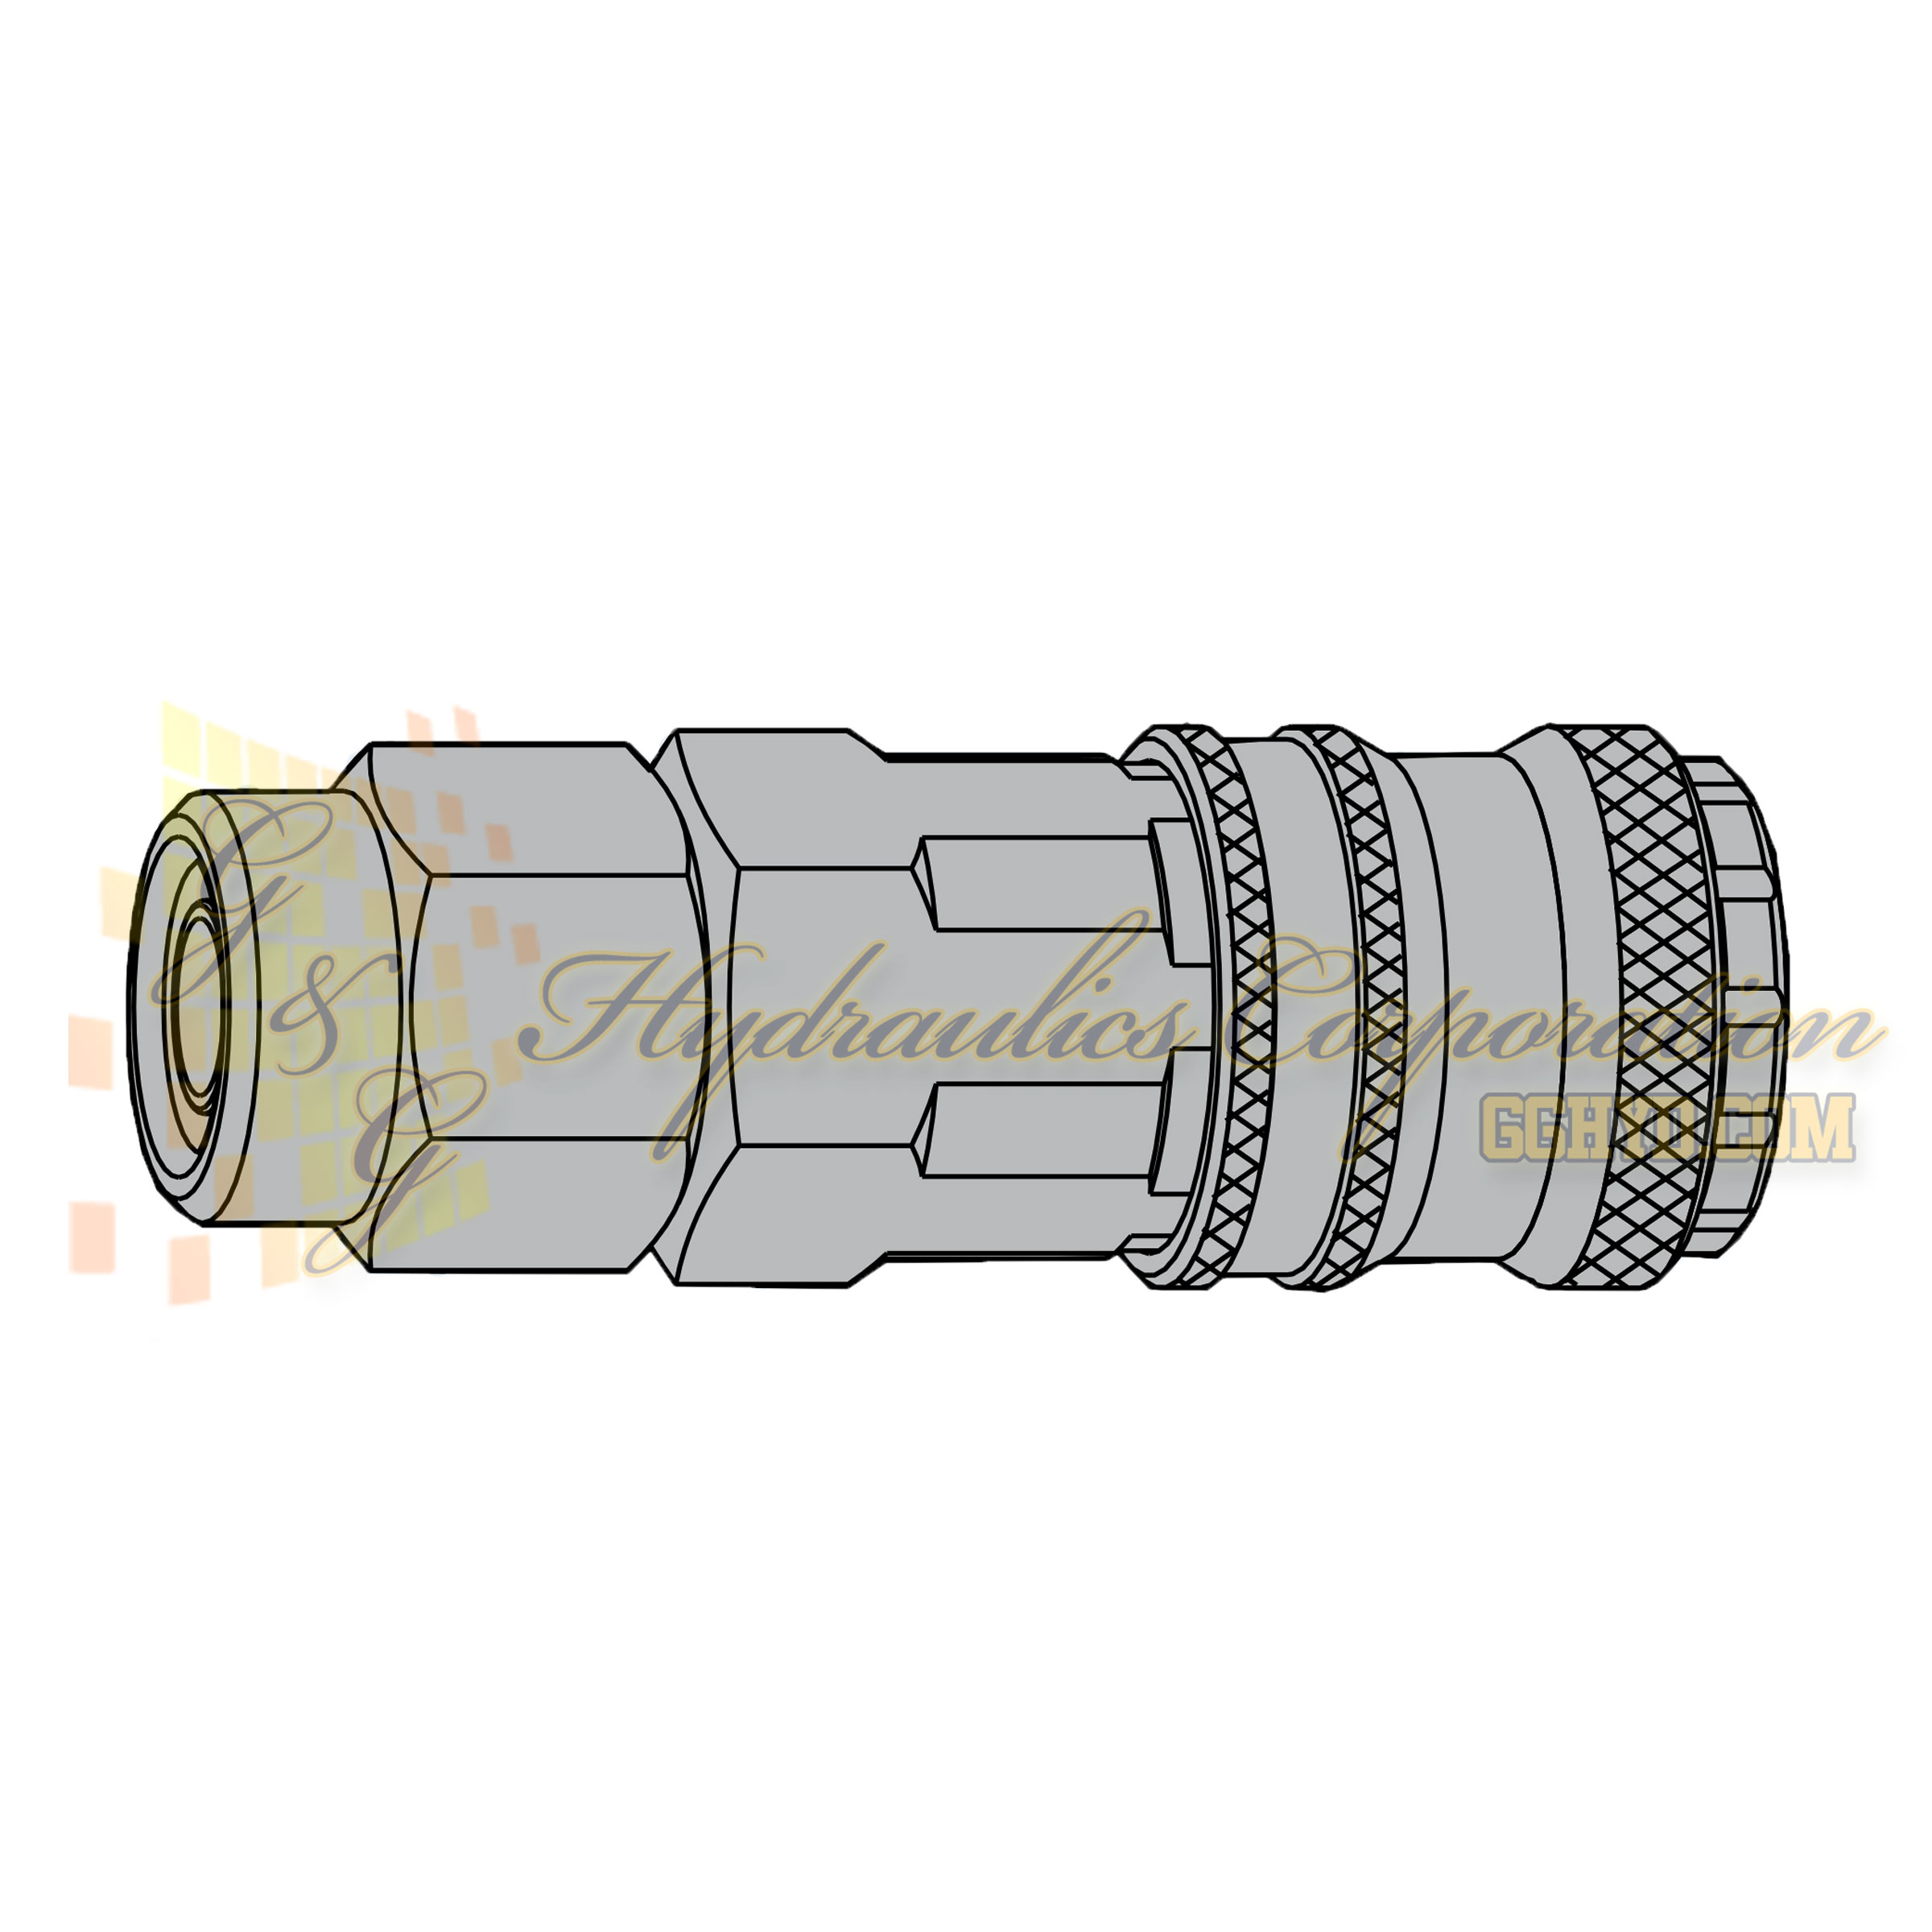 10-320-1405 CEJN Standard Coupler, 5x8mm Stream-Line connection